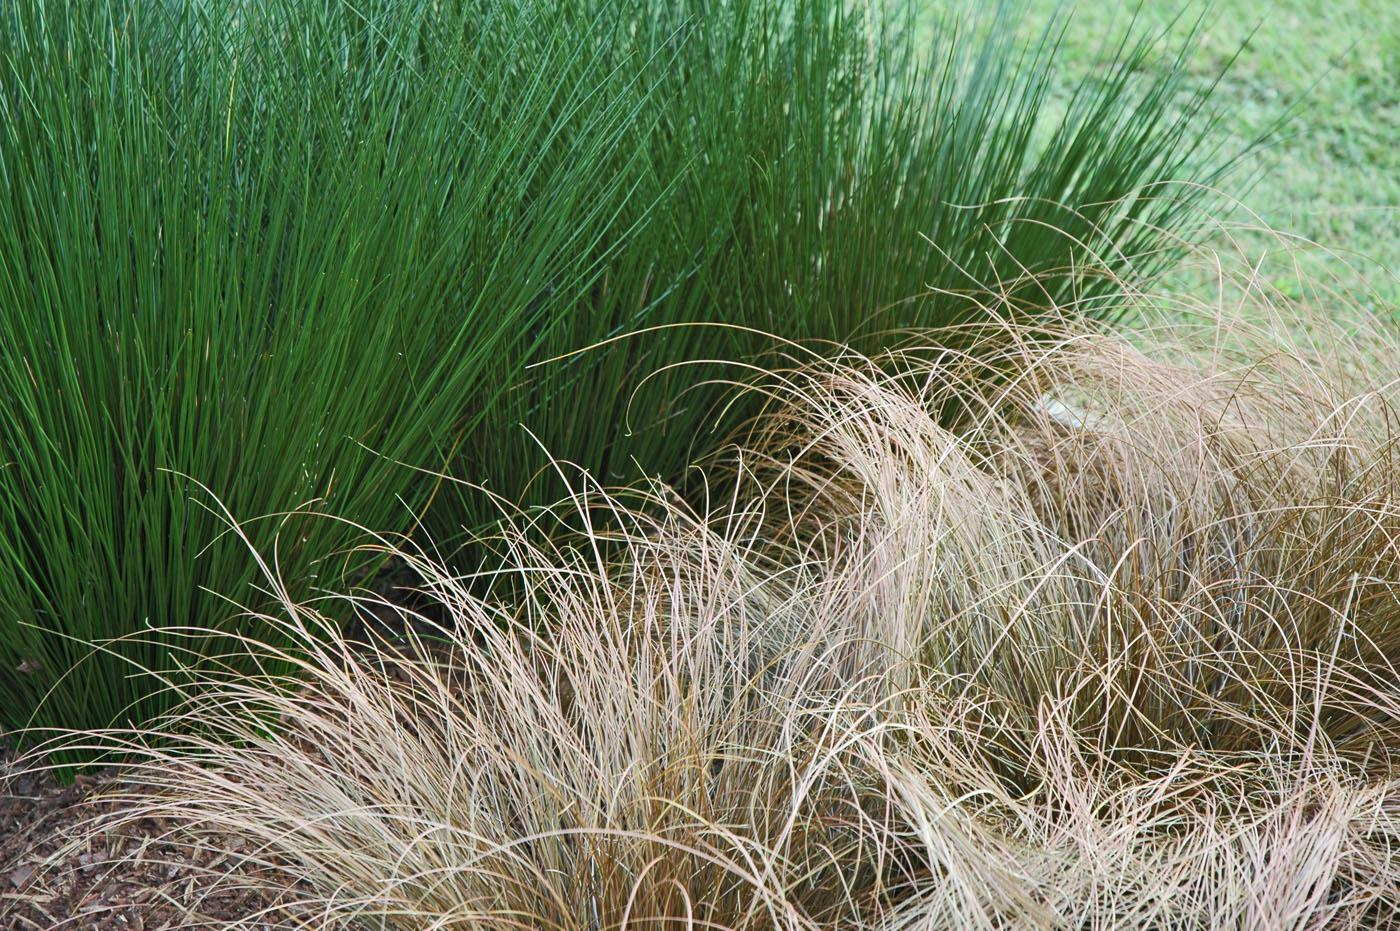 Rush varieties like this dark green Quartz Creek, or Juncus effuses, stand out beside the brown Toffee Twist carex. Rush varieties are among the 2008 Mississippi Medallion award-winning plants and are capturing market attention this spring. (Photo by Norman Winter)